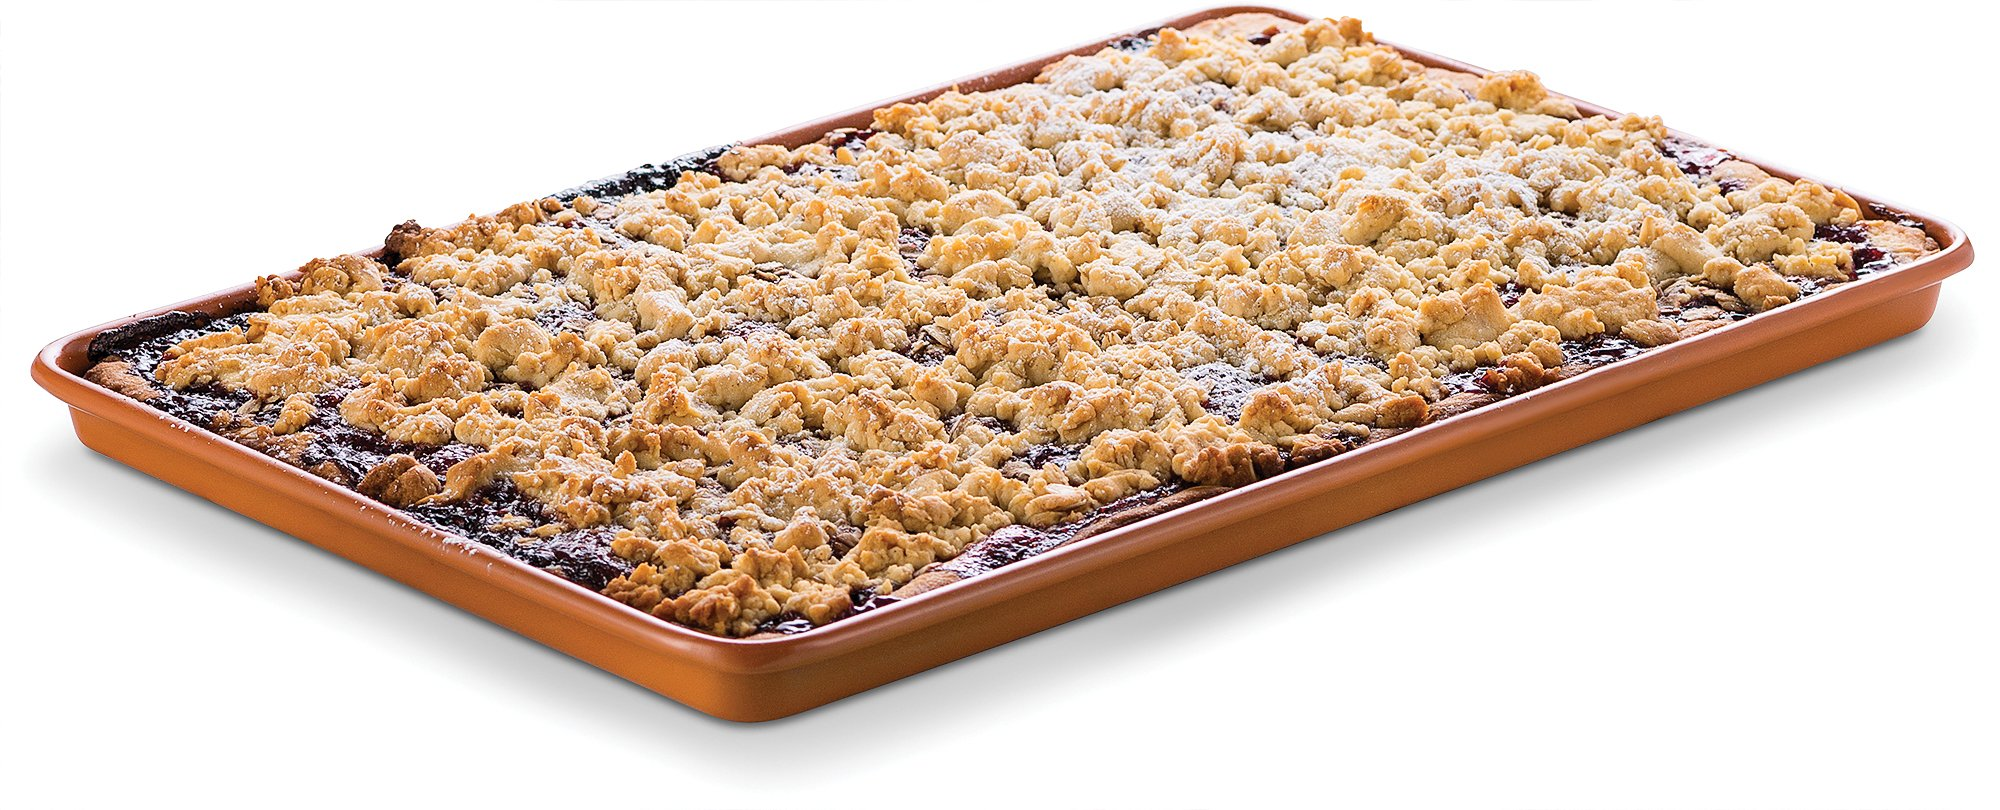 Ceramic Coated Cookie Sheet 17.3'' x 11.6'' - Premium Nonstick, Even Baking, Dishwasher and Oven Safe - PTFE/PFOA Free - Red Cookware and Bakeware by Bovado USA by BOVADO USA (Image #3)